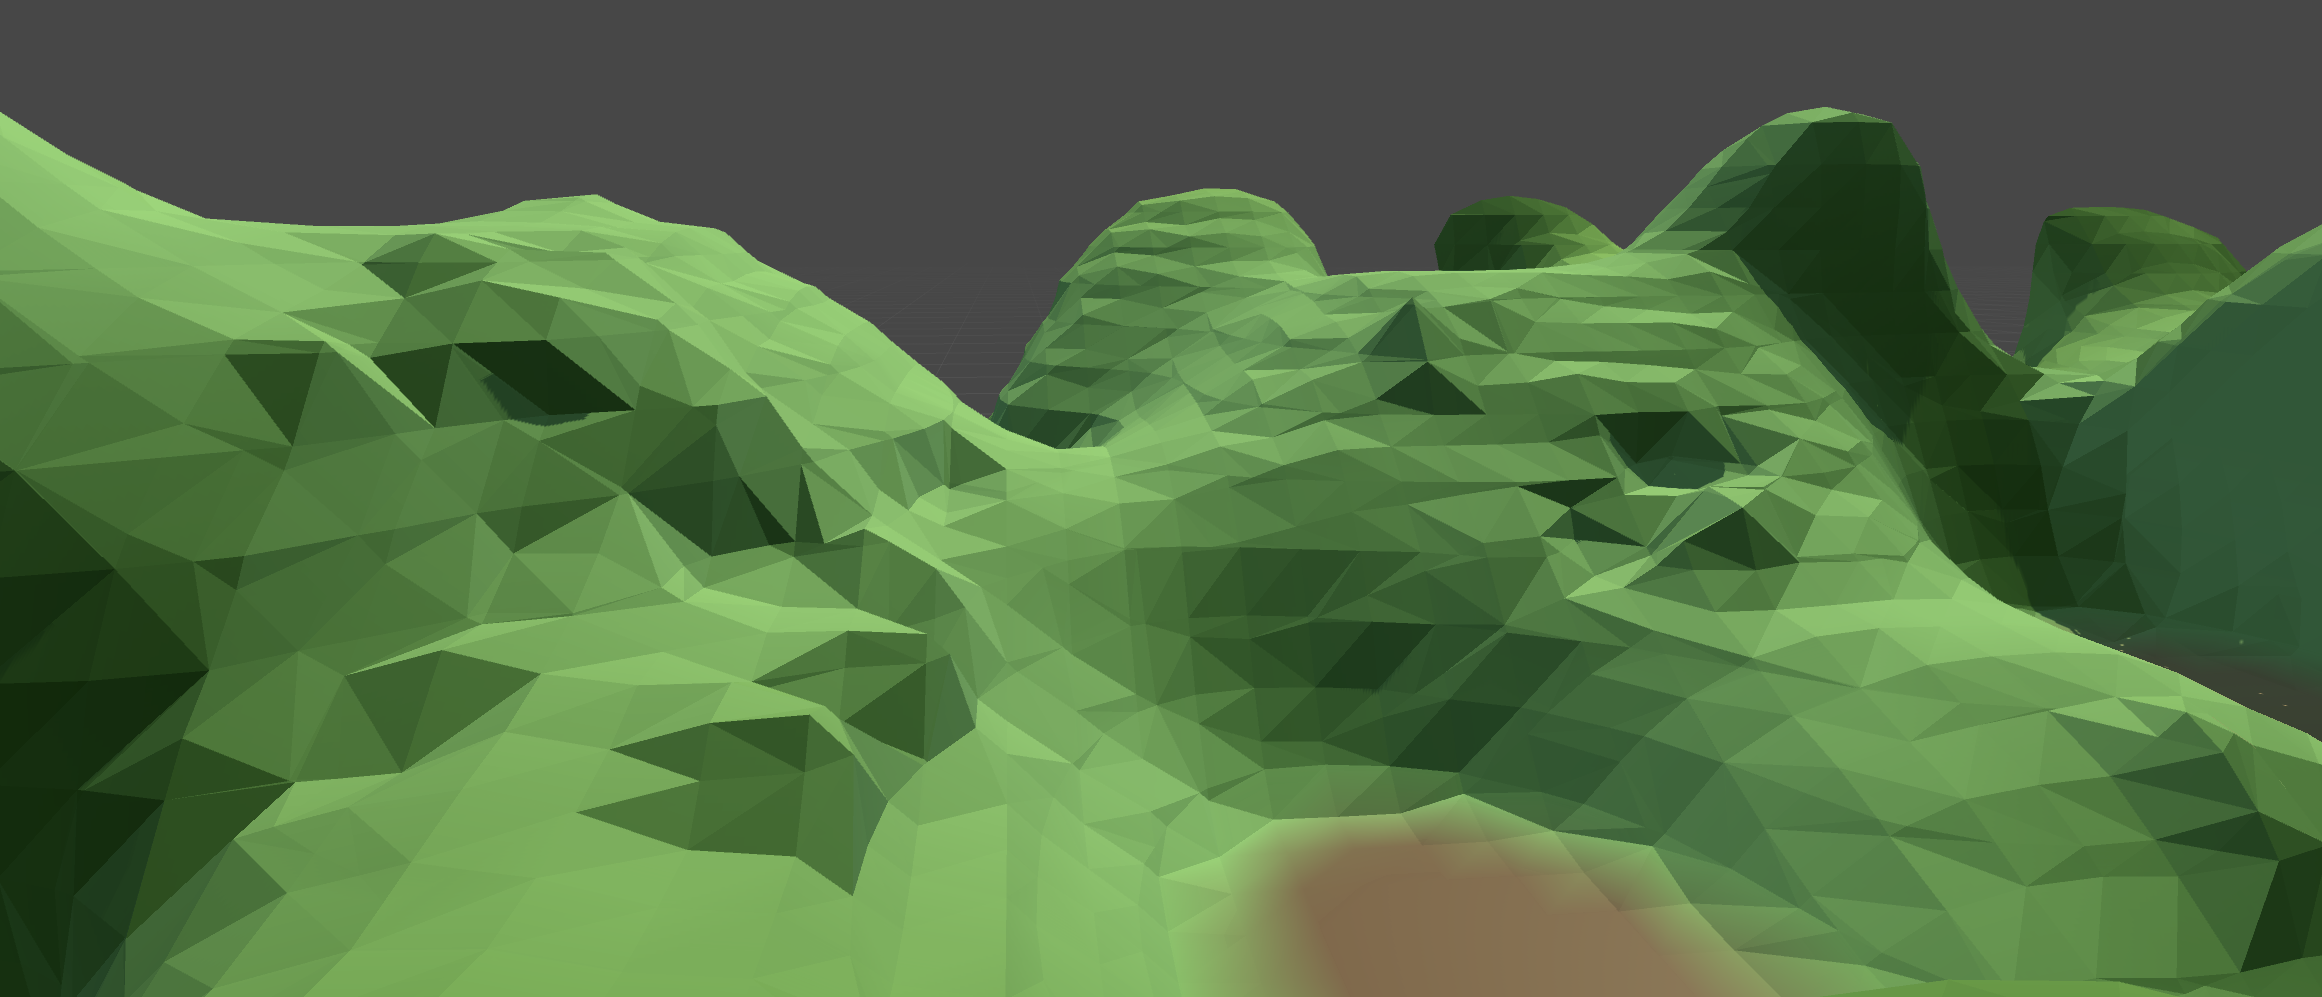 Low-Poly_Voxel0.png